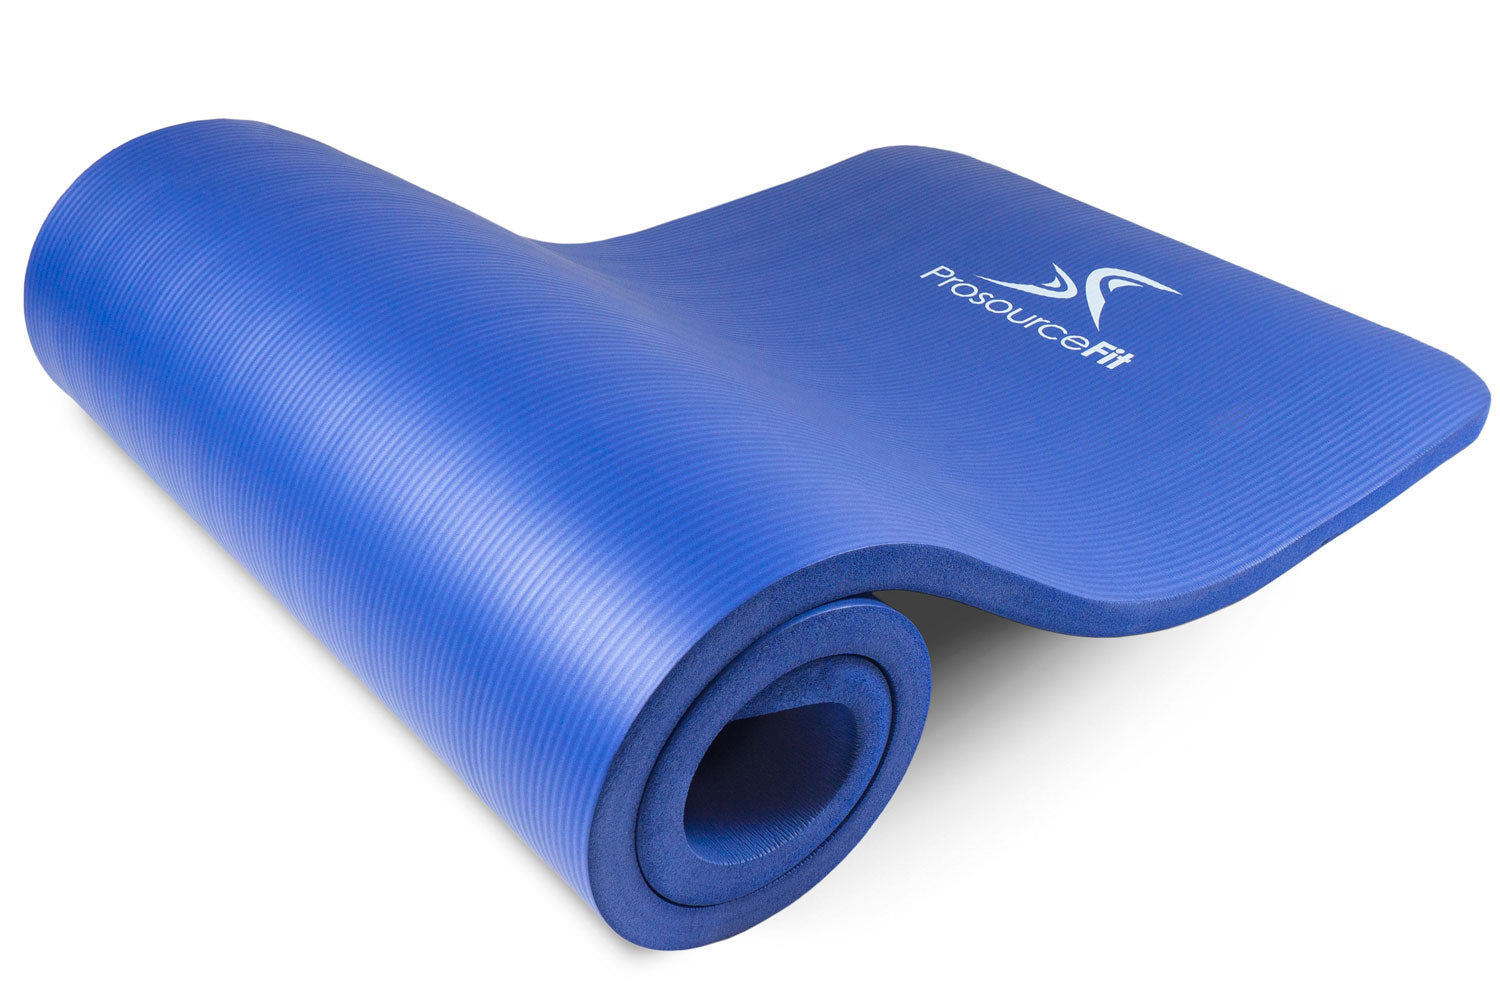 Blue Extra Thick Yoga and Pilates Mat 1 inch